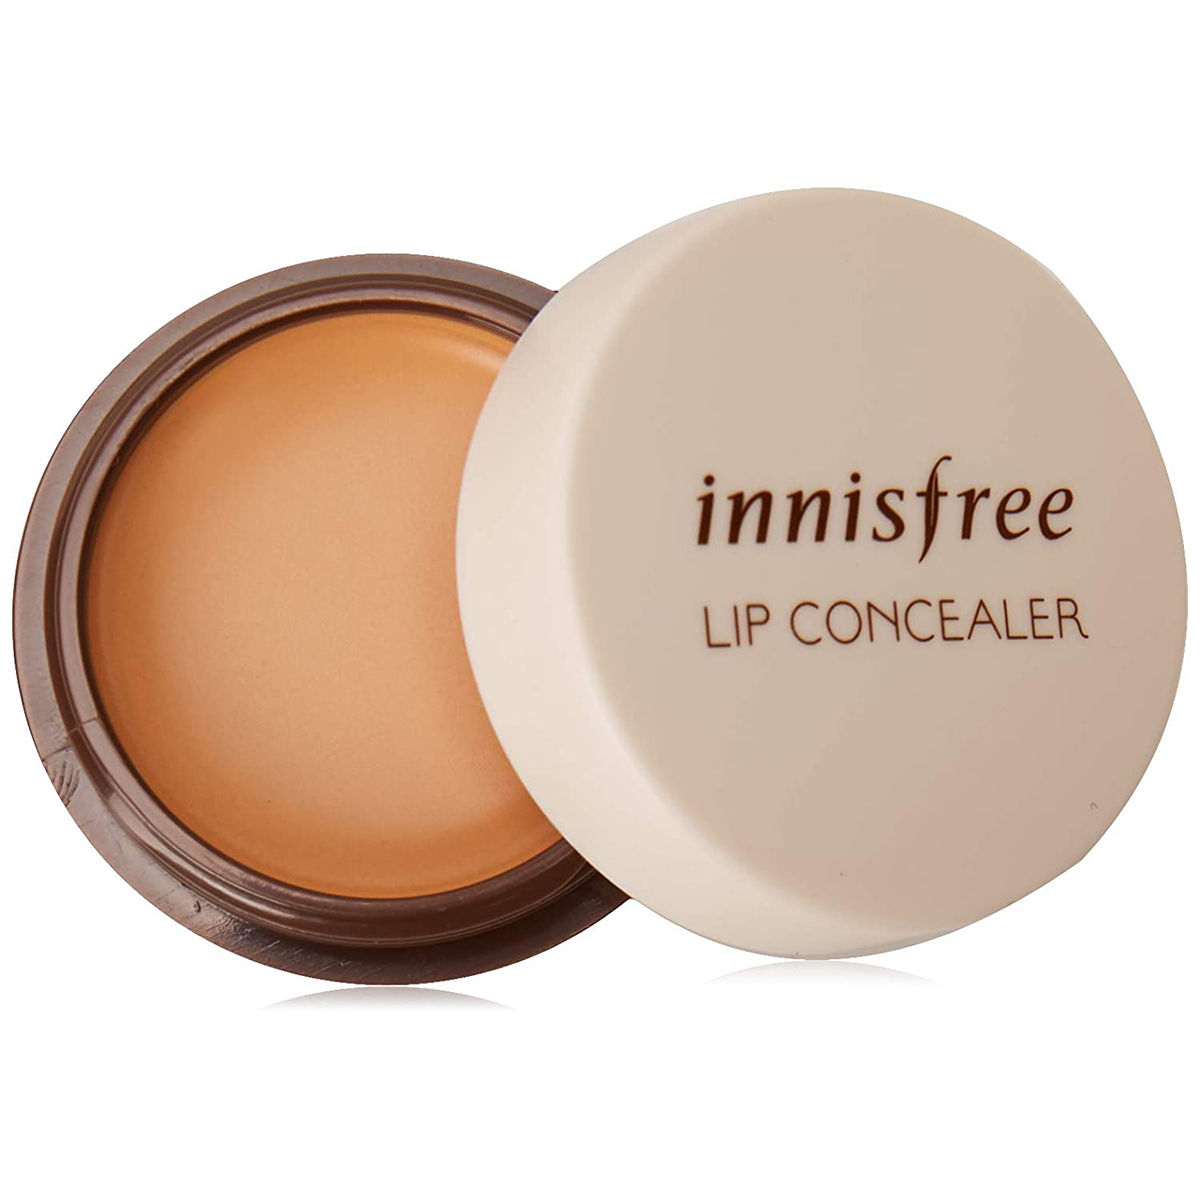 kem-che-khuyet-diem-moi-tham-innisfree-tapping-lip-concealer-review-thanh-phan-gia-cong-dung